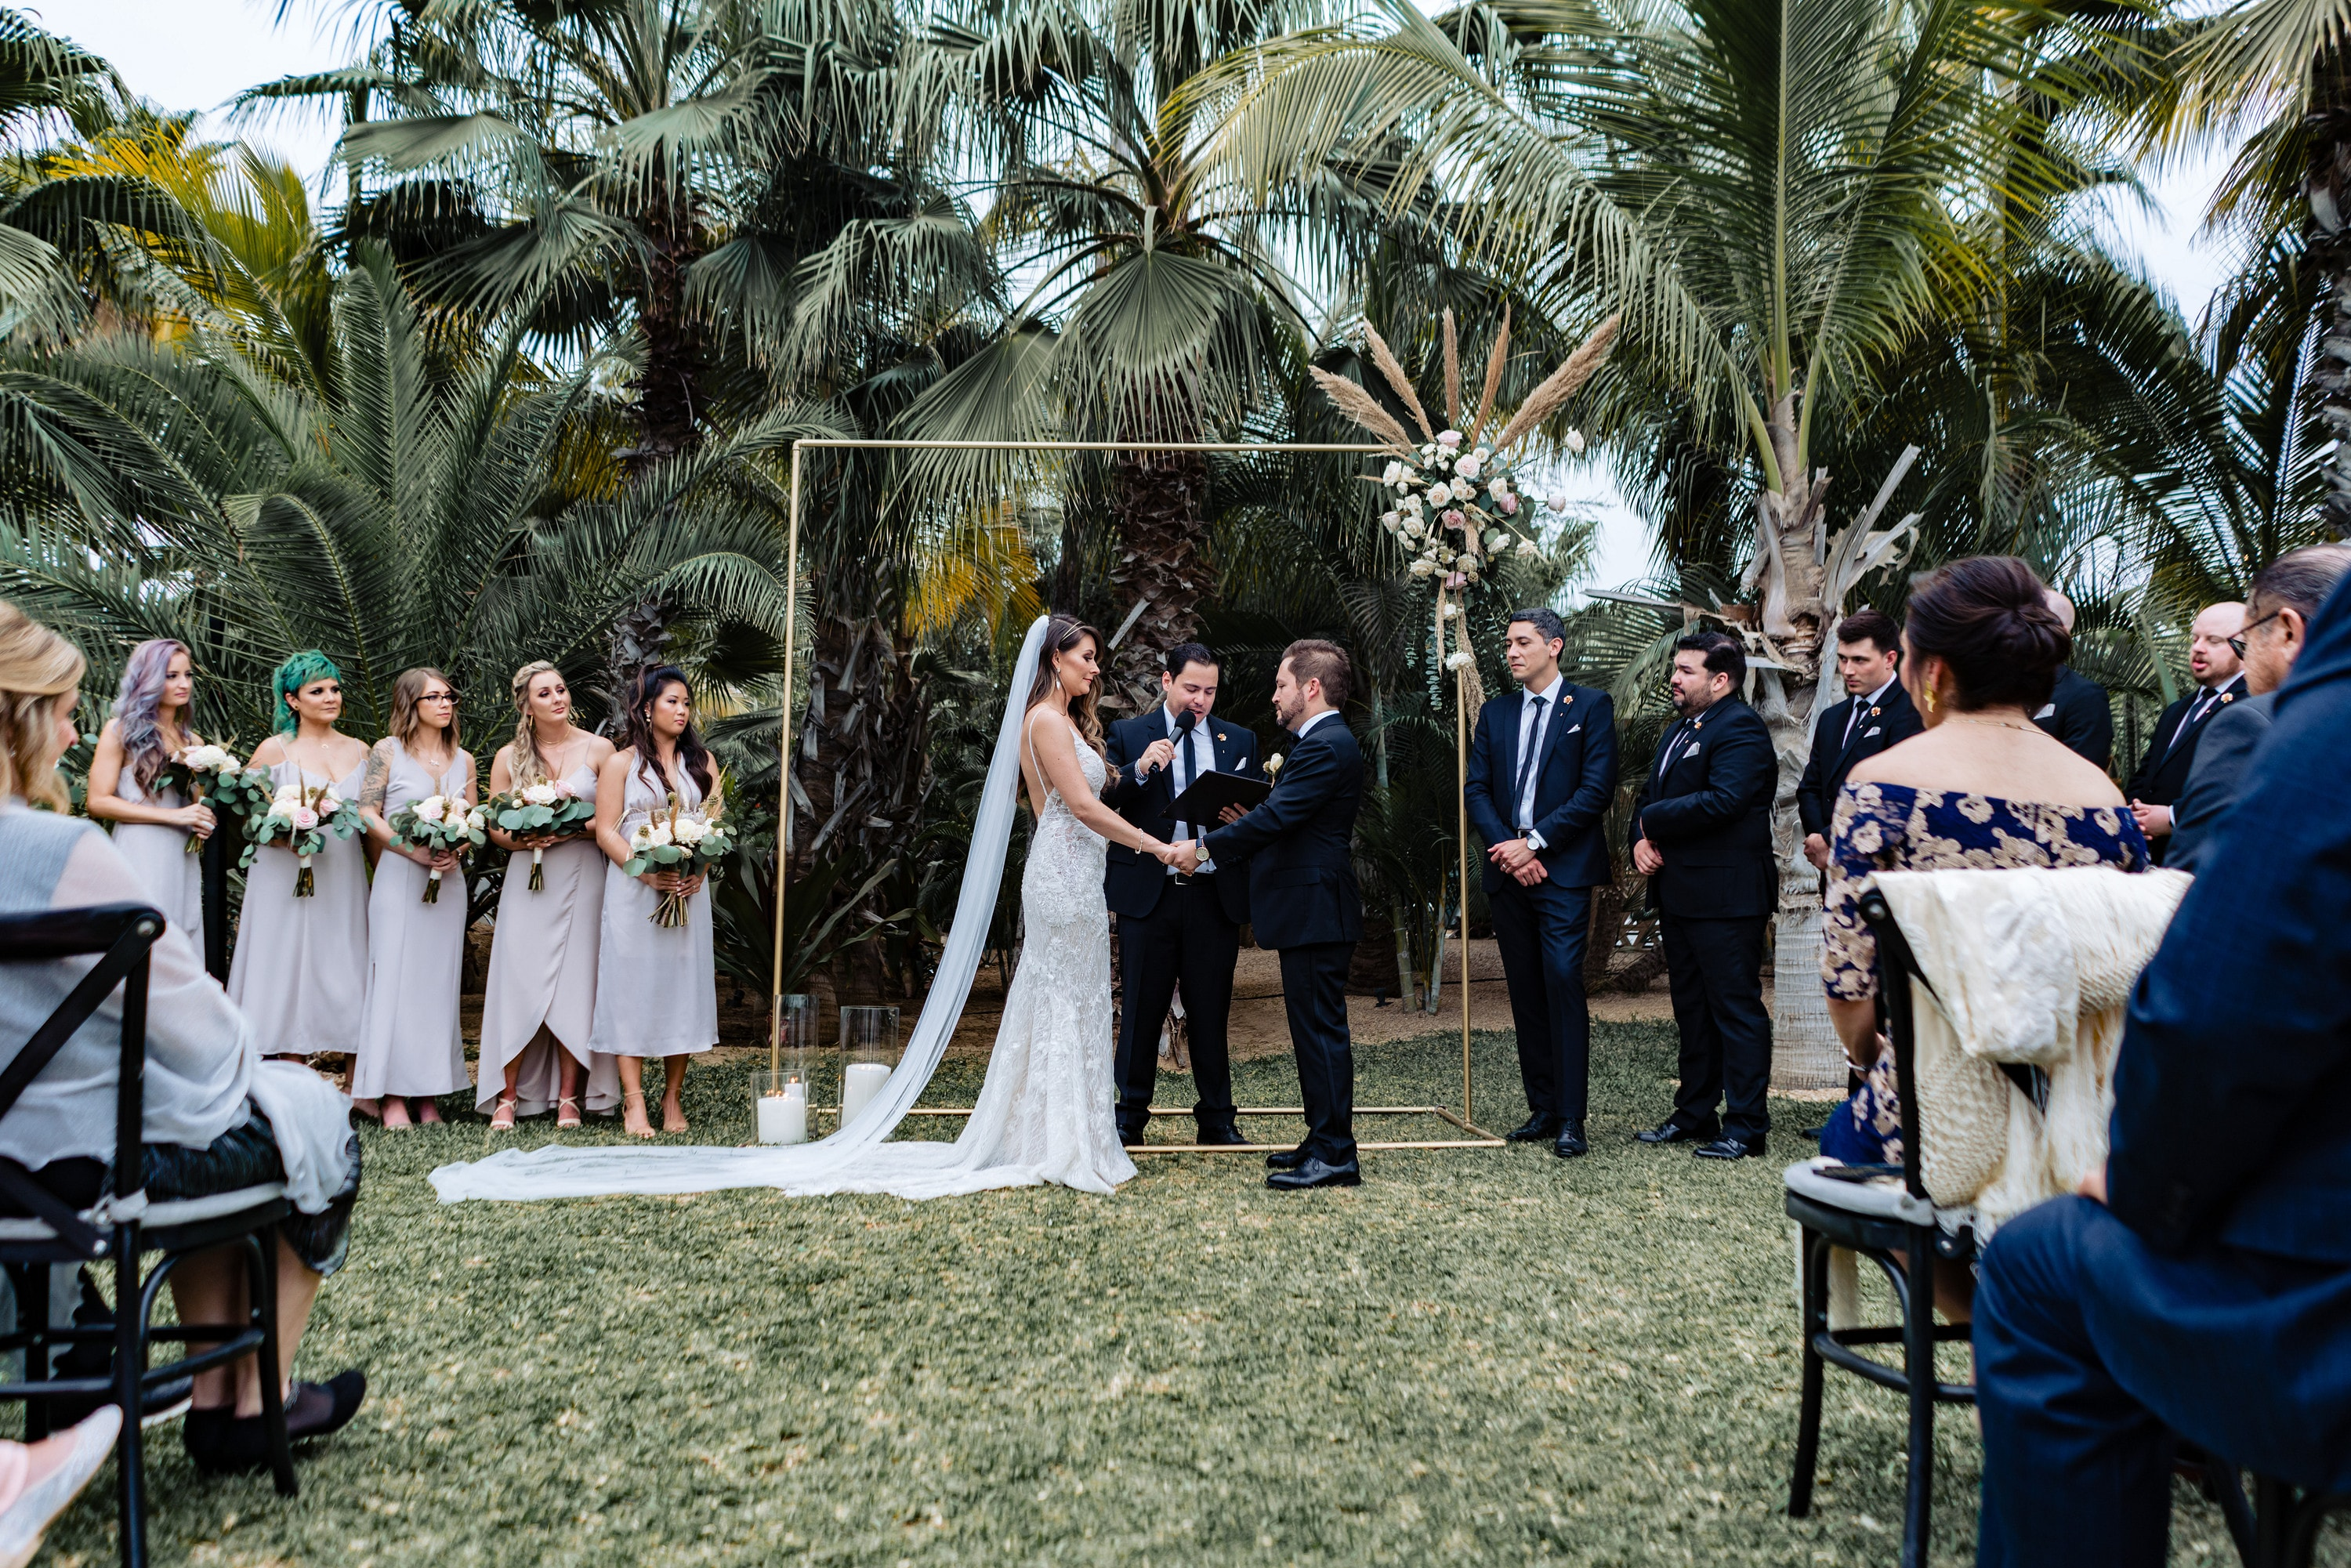 Andrea & Nino's Vibrant Destination Wedding at Los Cabos- Acre Baja, Photography by Fabi Rosas Cabo Wedding Photographer for Luxury Destination Wedding network Adriana Weddings